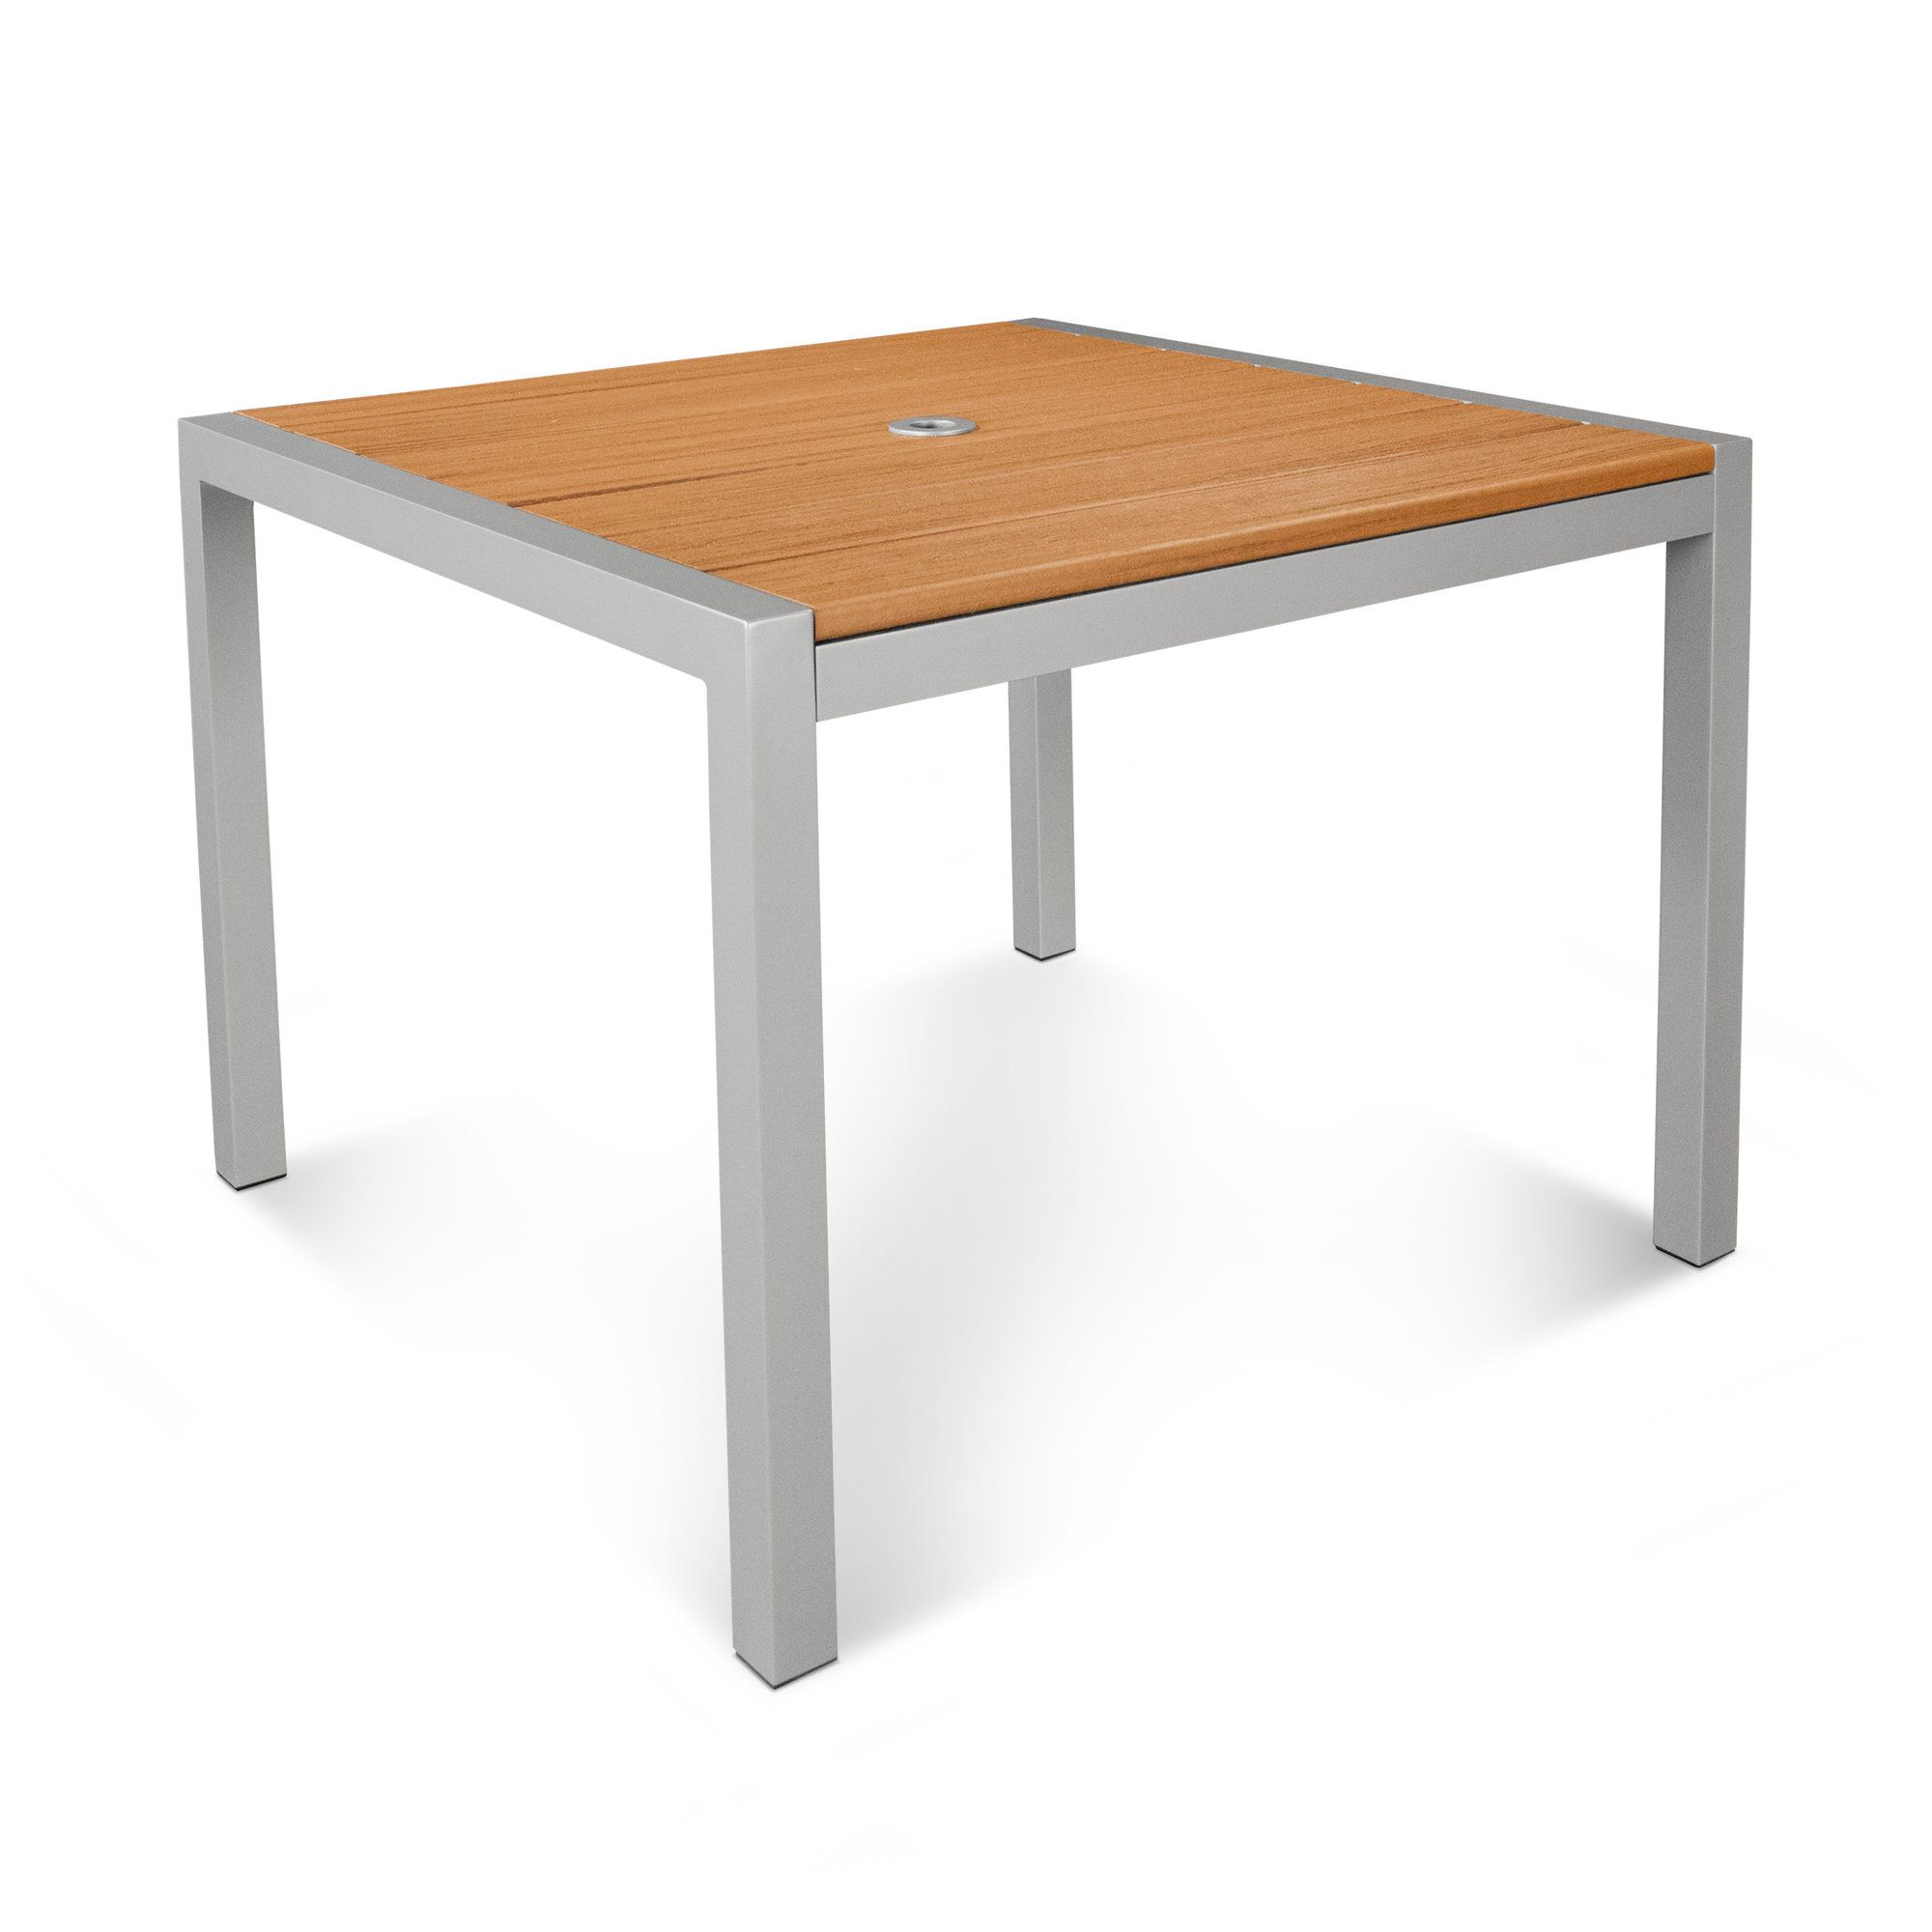 Parsons Plastic Resin Dining Table Products Dining Table